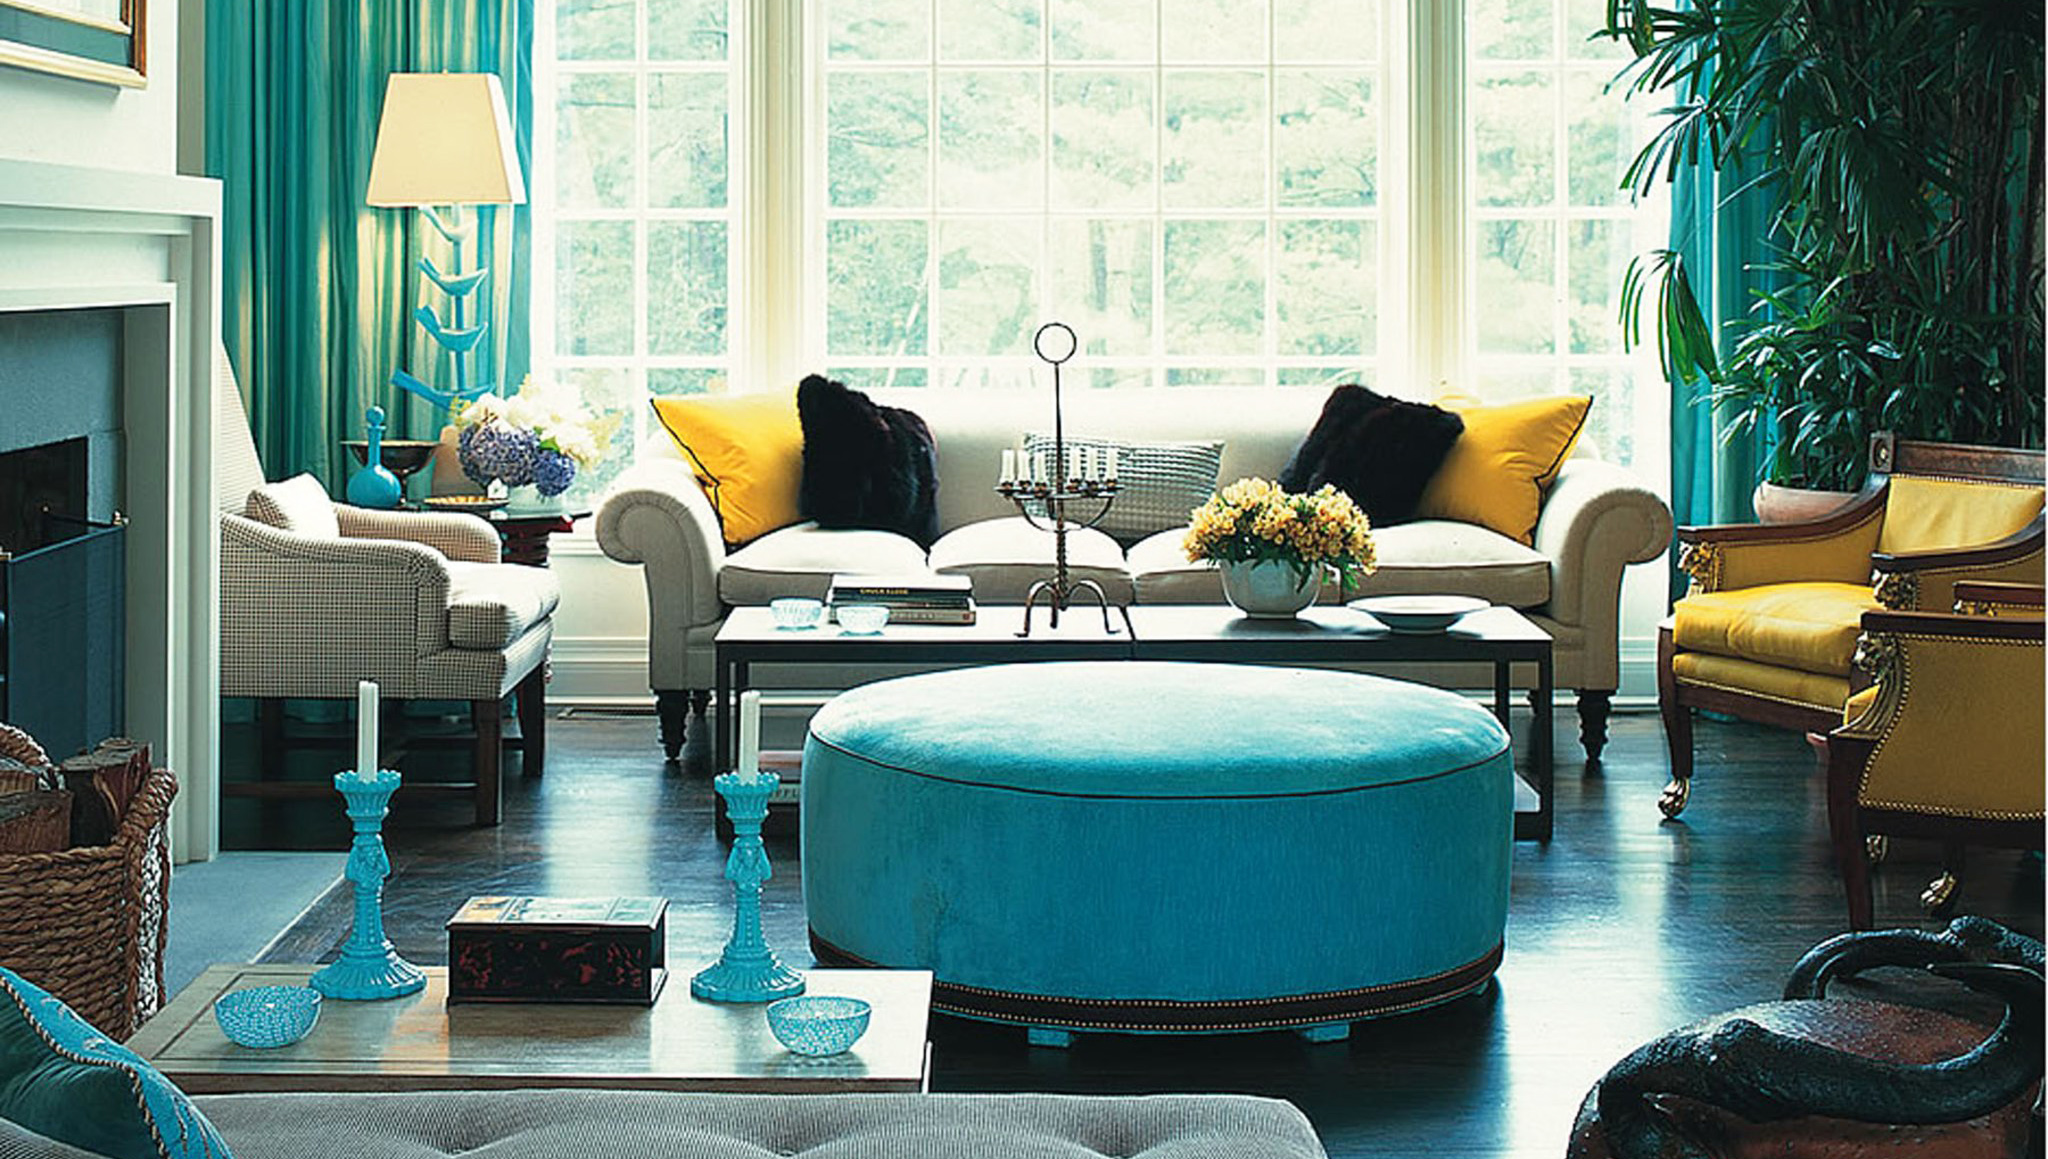 living-room-furniture-arrangement-ideas-round-ottoman-coffee-table-with-curved-modern-sofas-also-table-lamps-windows-curtain-for-wide-windows-as-inspiring-turquoise-living-room